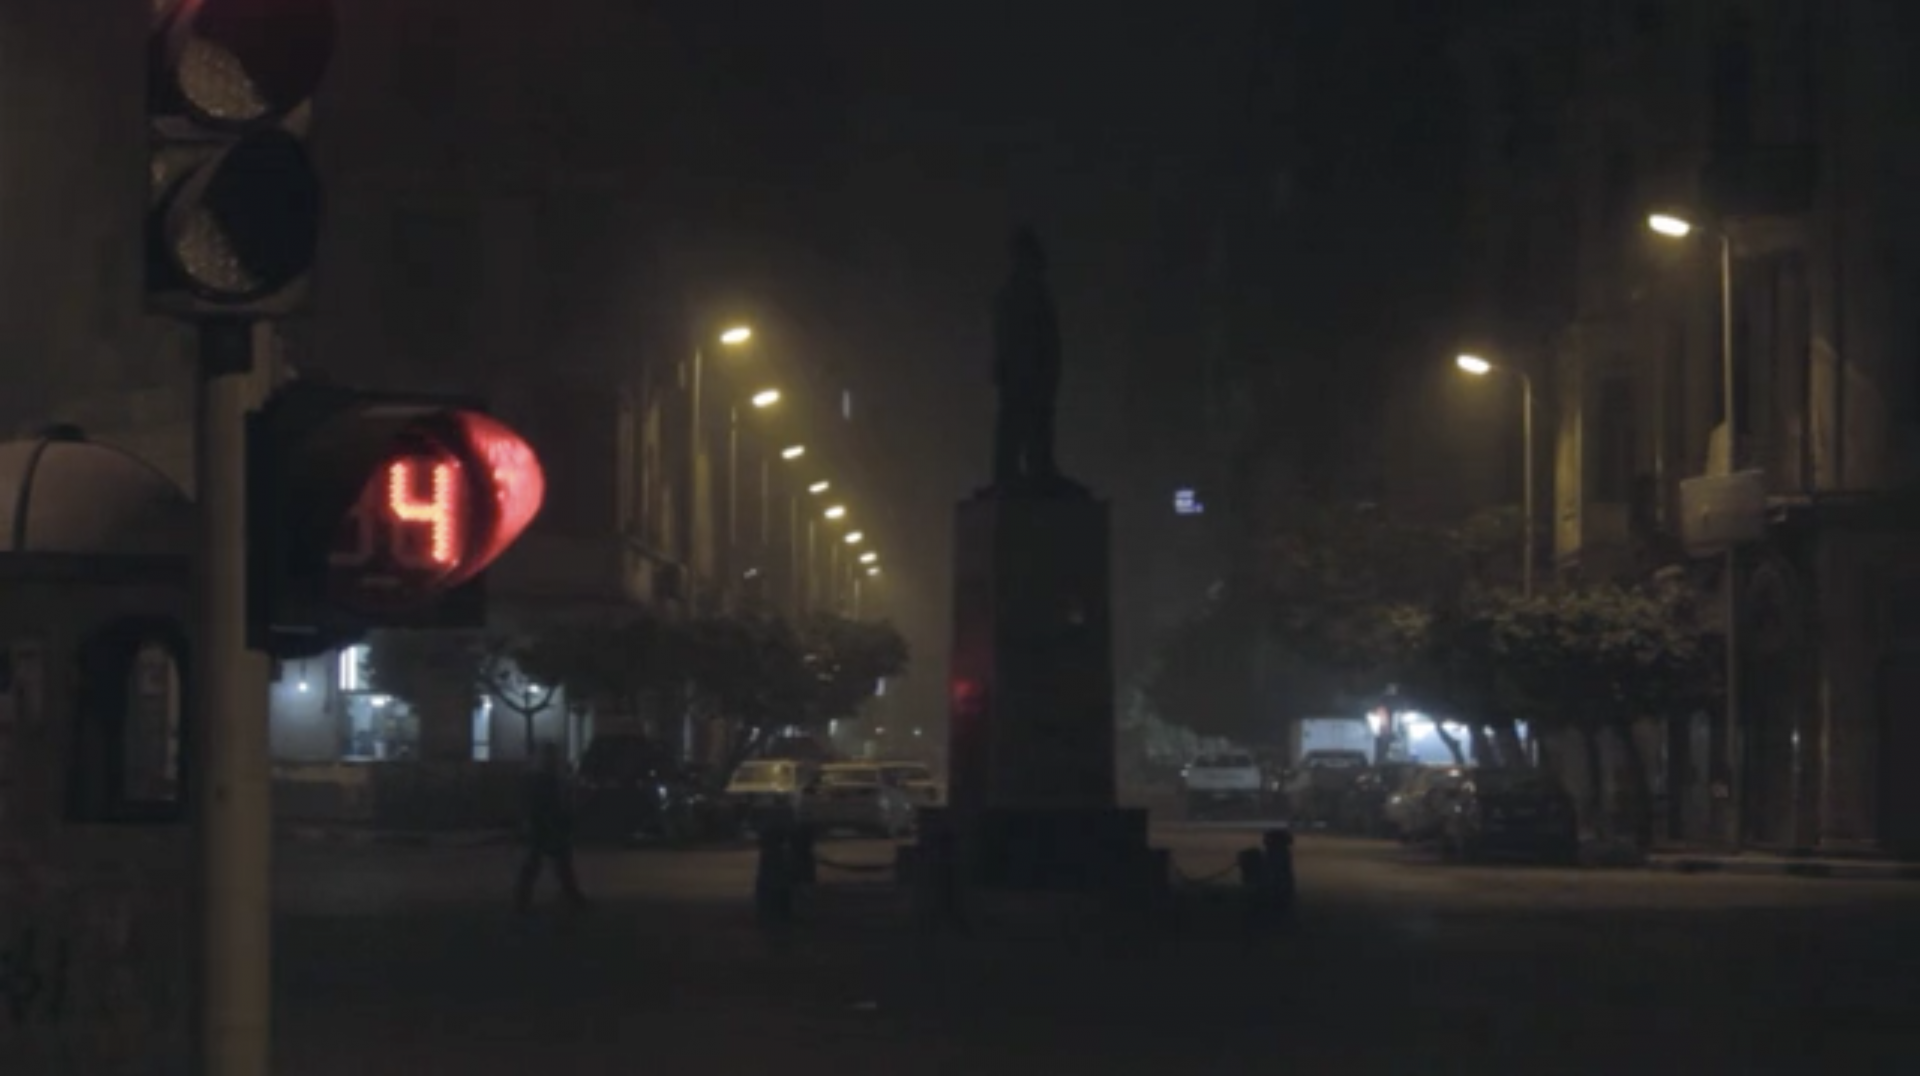 Ahmed Abu el Fadl, Cairo from 5 to 7, 2013